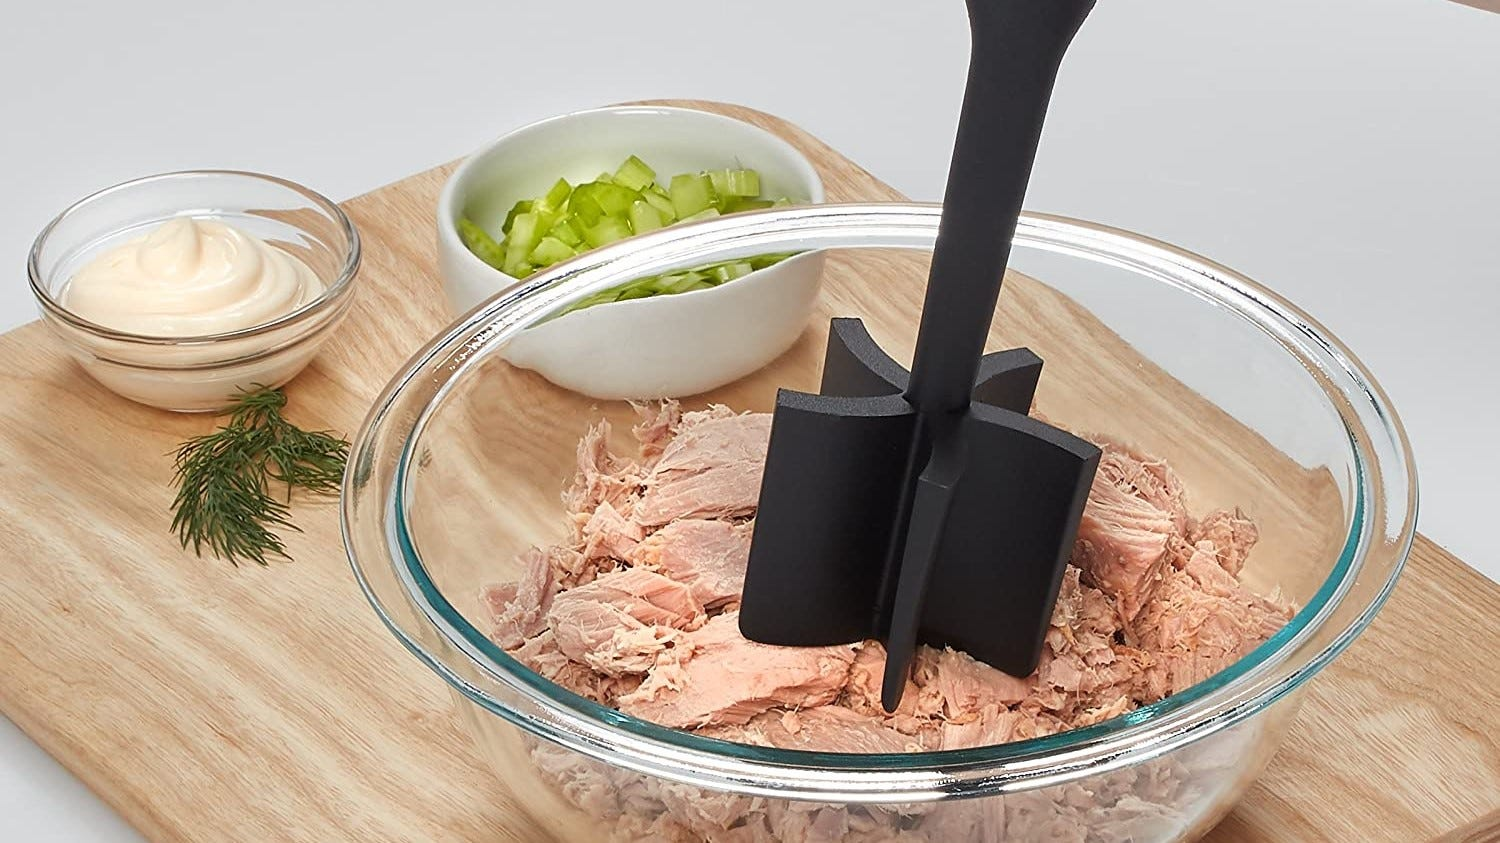 Meat masher being used on a bowl of chicken.